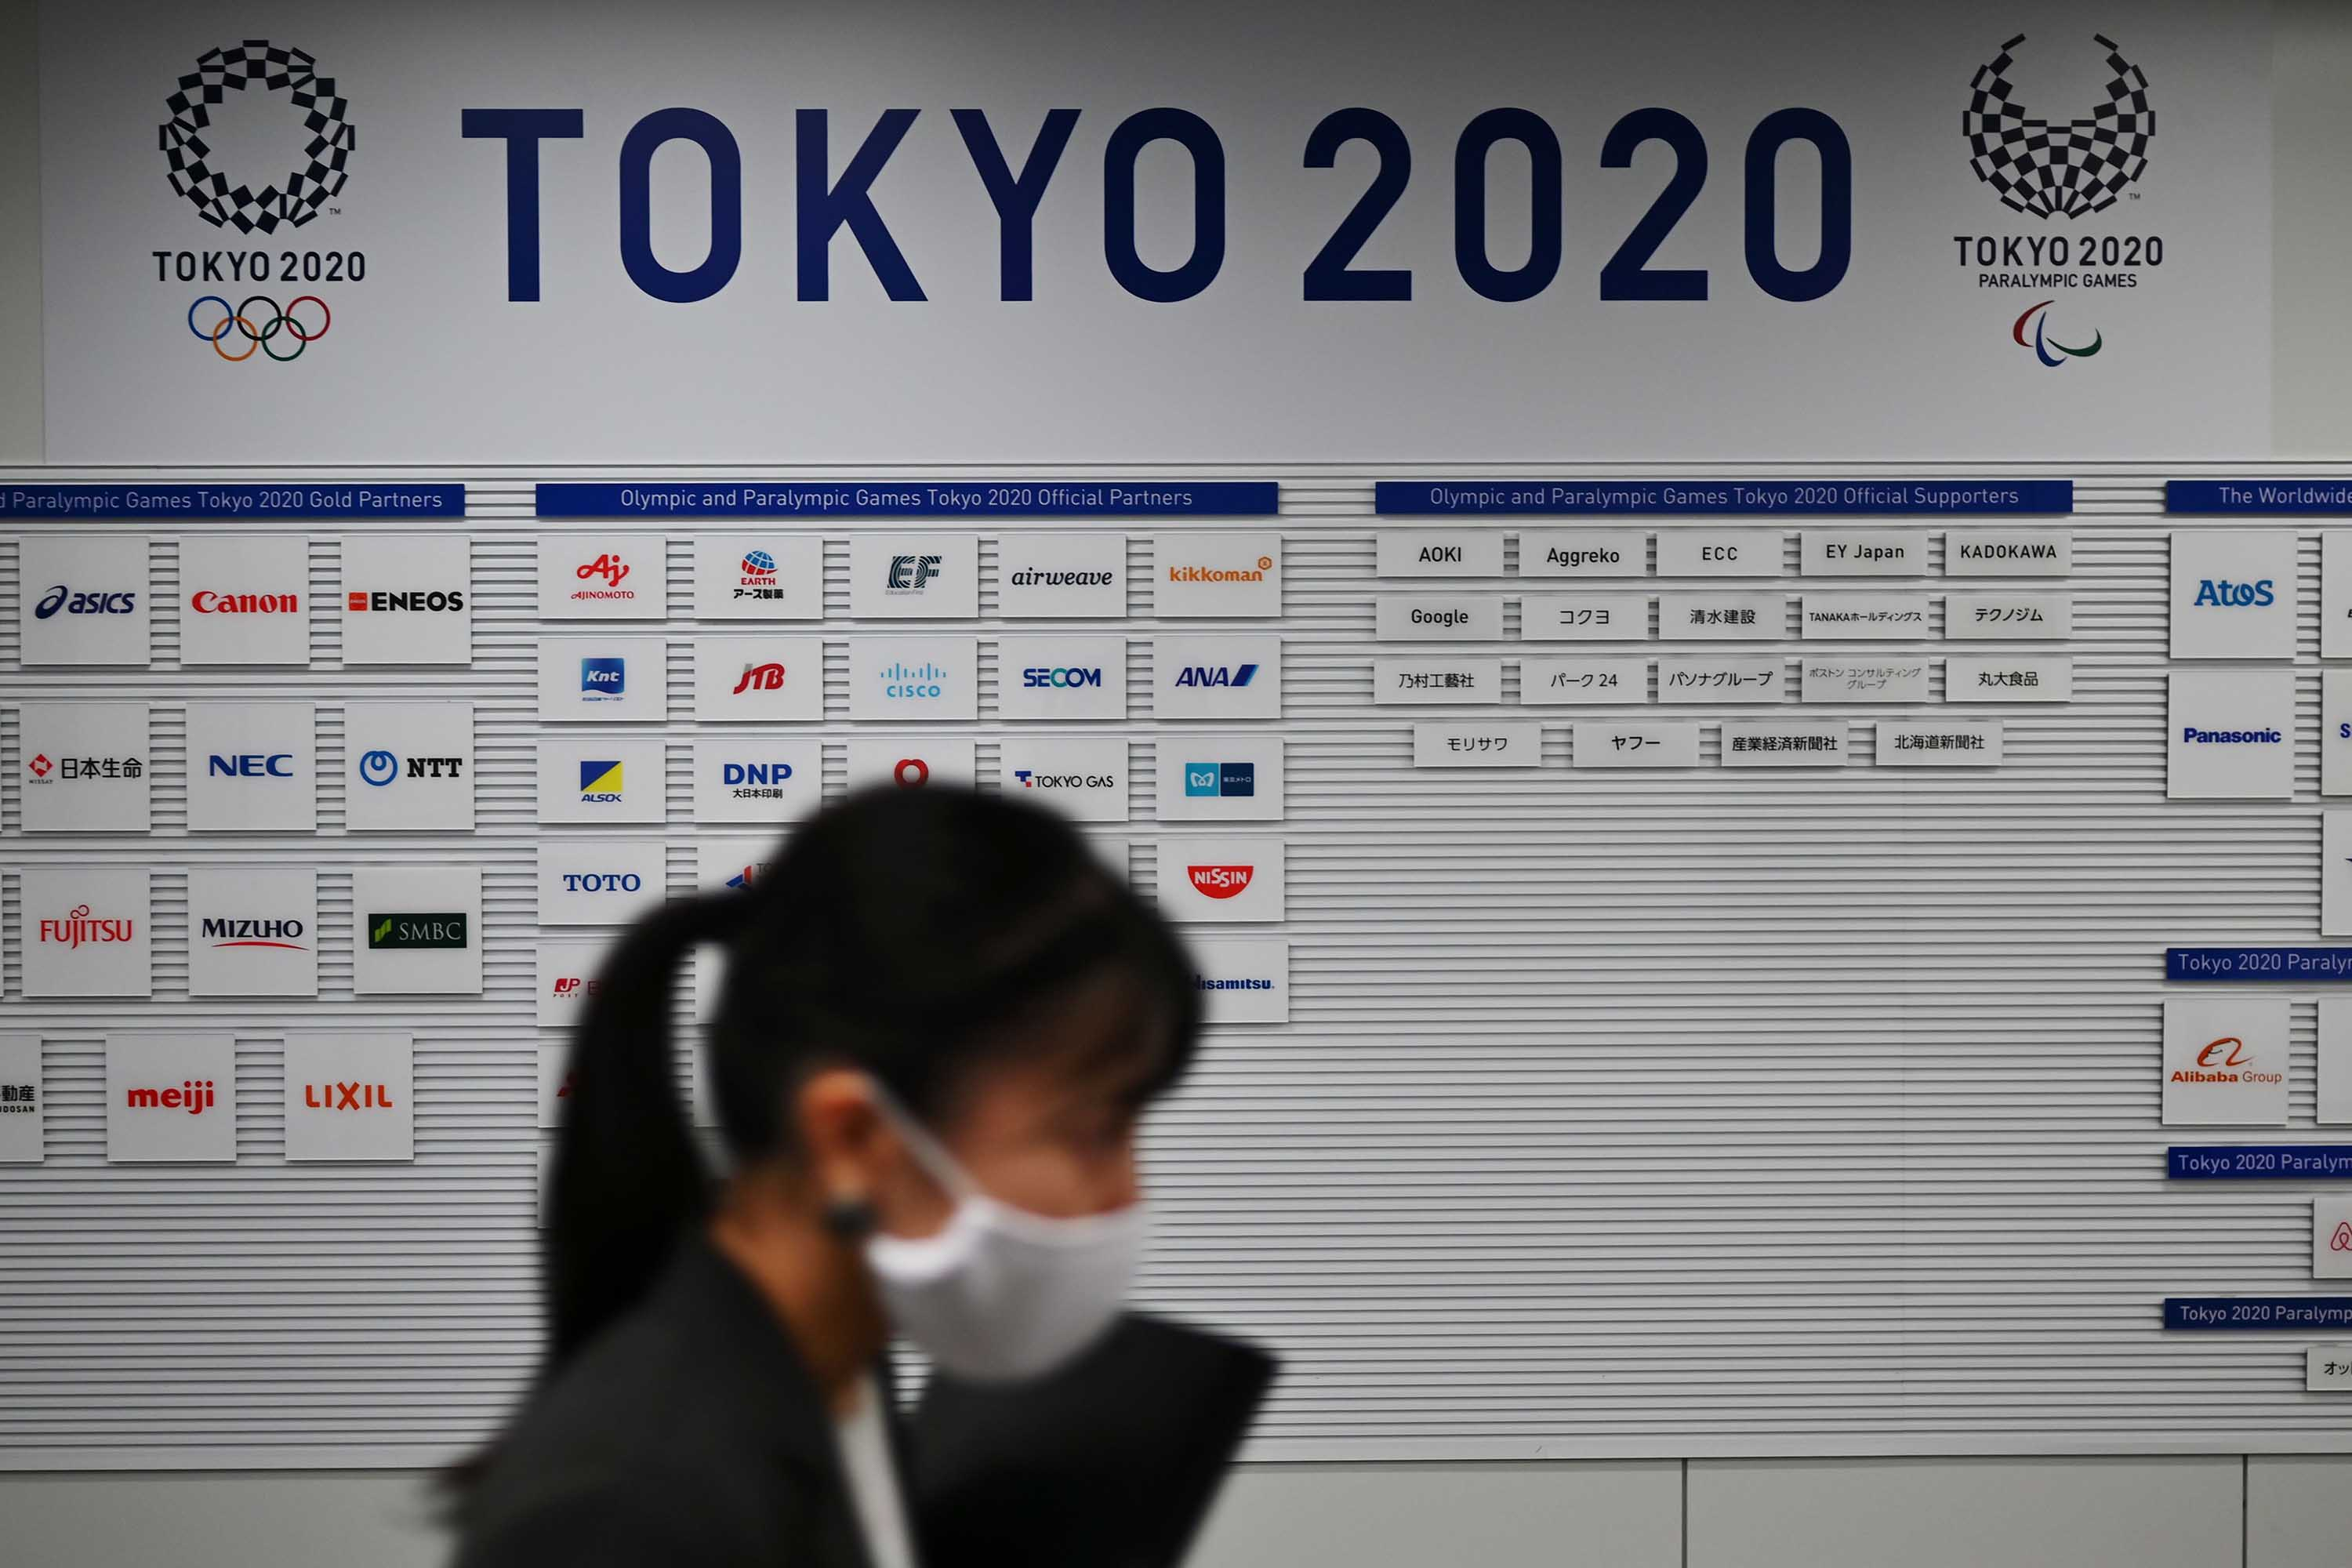 The Tokyo 2020 Olympic Games logo is pictured in Tokyo, Japan, on September 18.